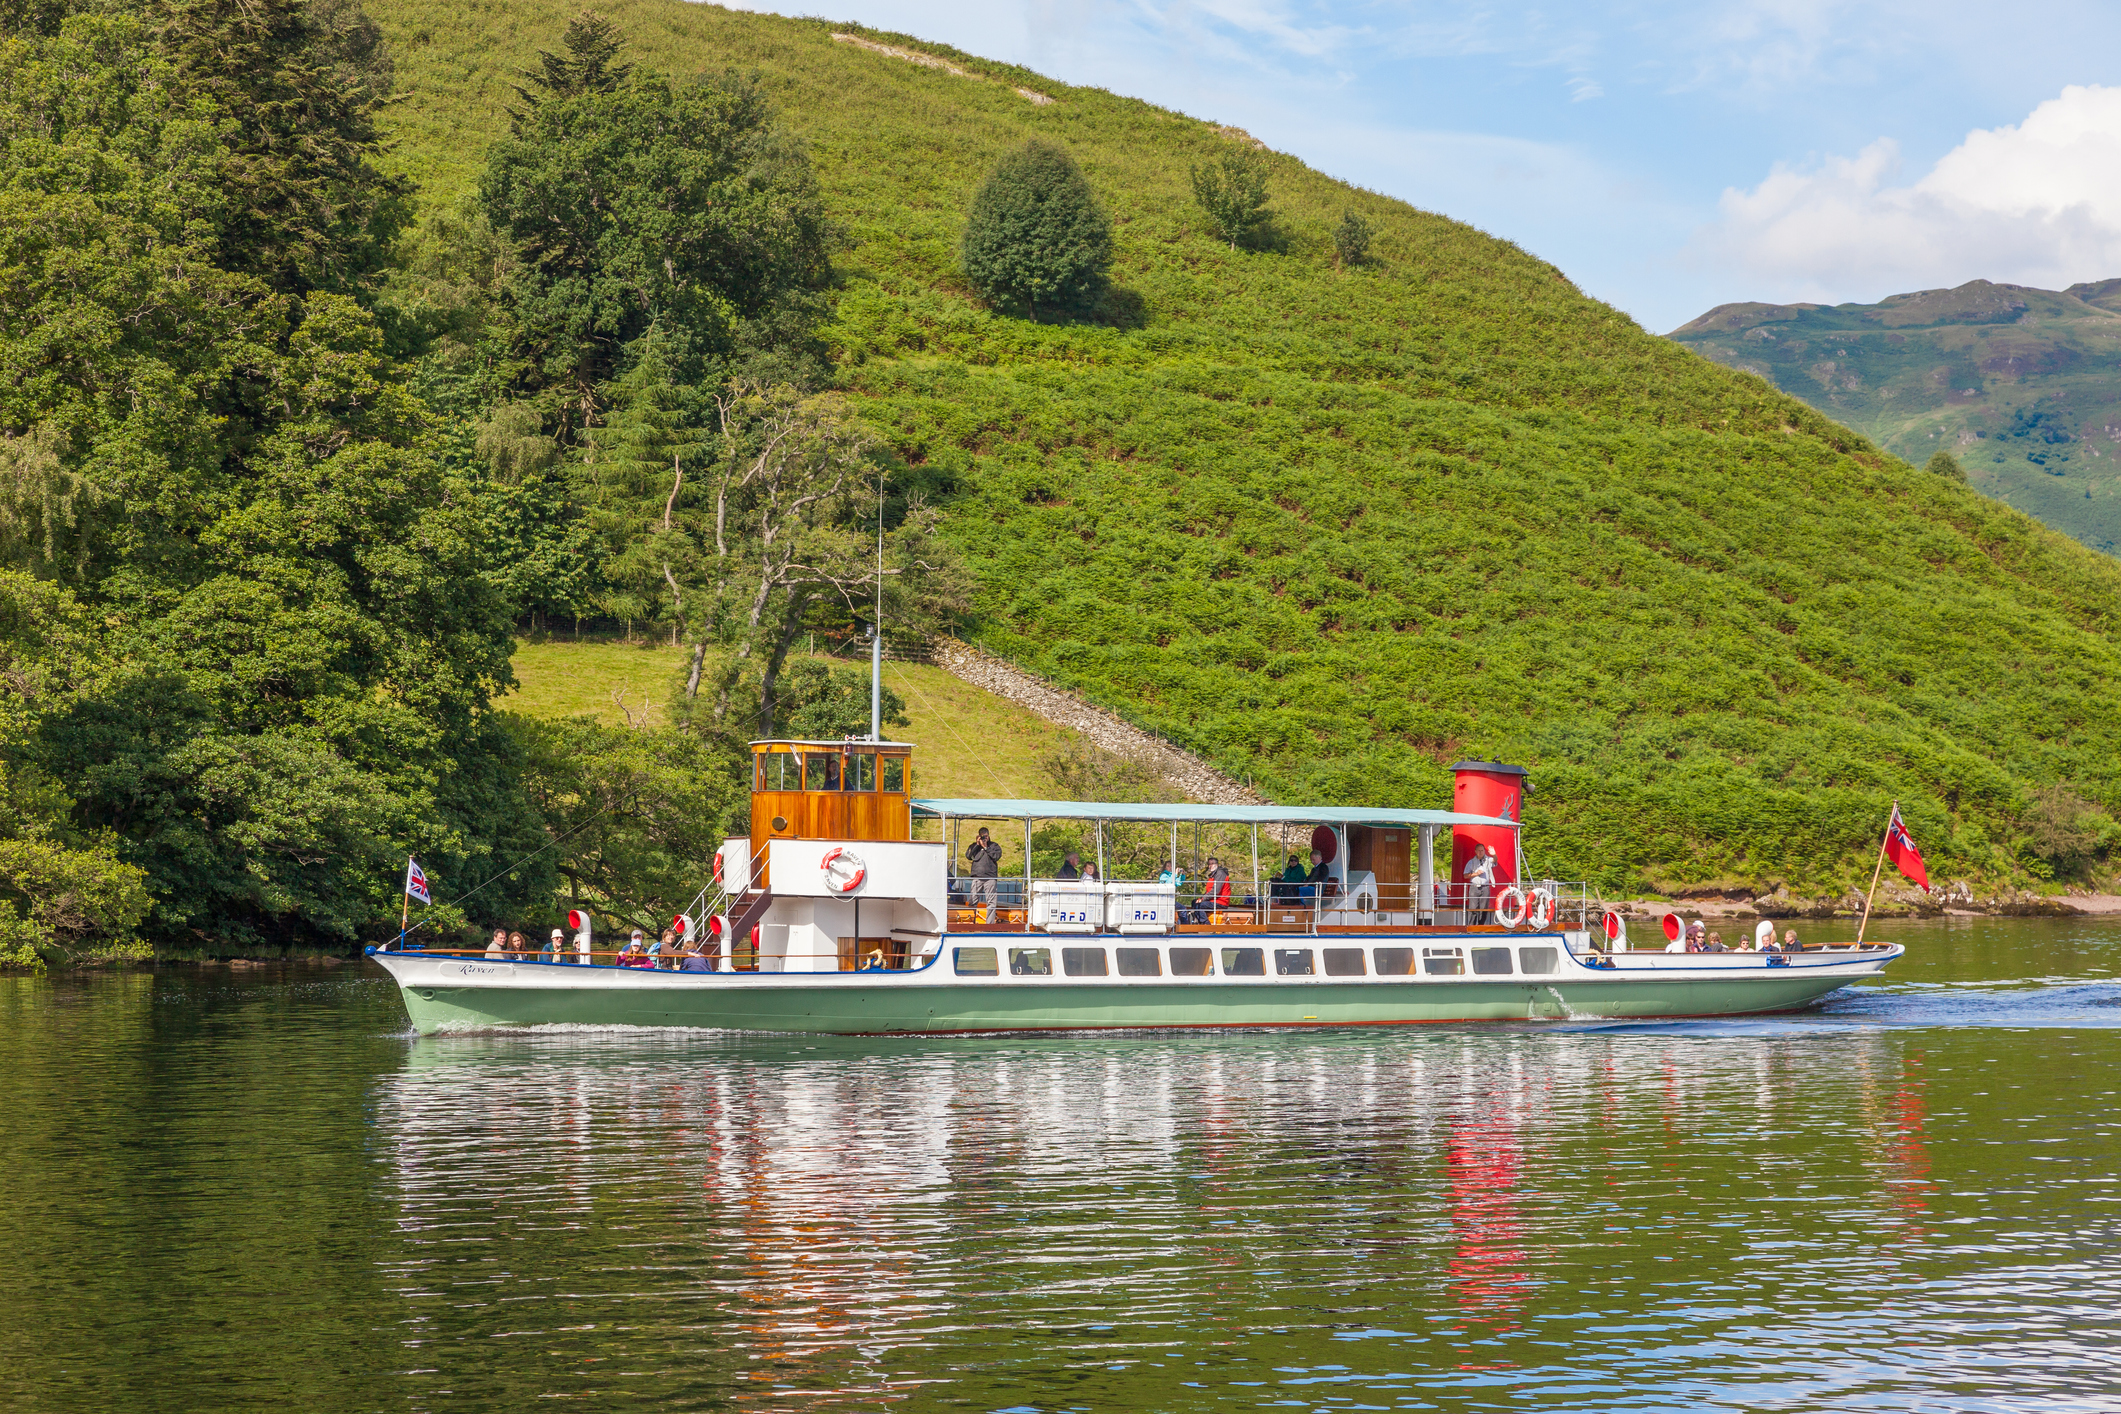 Tourists aboard the 'Raven' on Ullswater, in the English Lake District